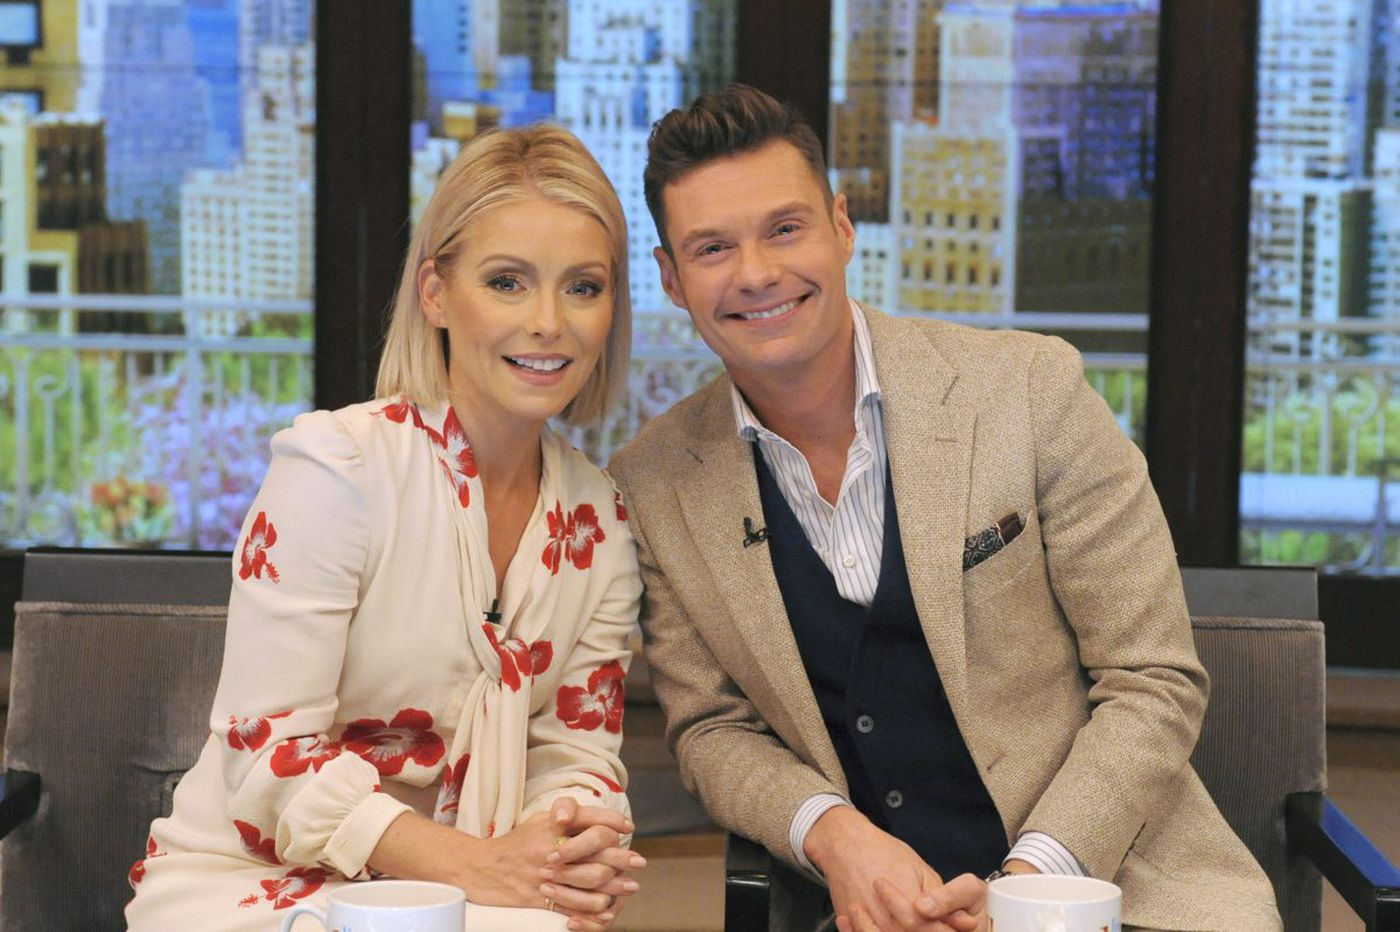 Kelly Ripa defends Ryan Seacrest as a 'privilege to work with' on 'Live'